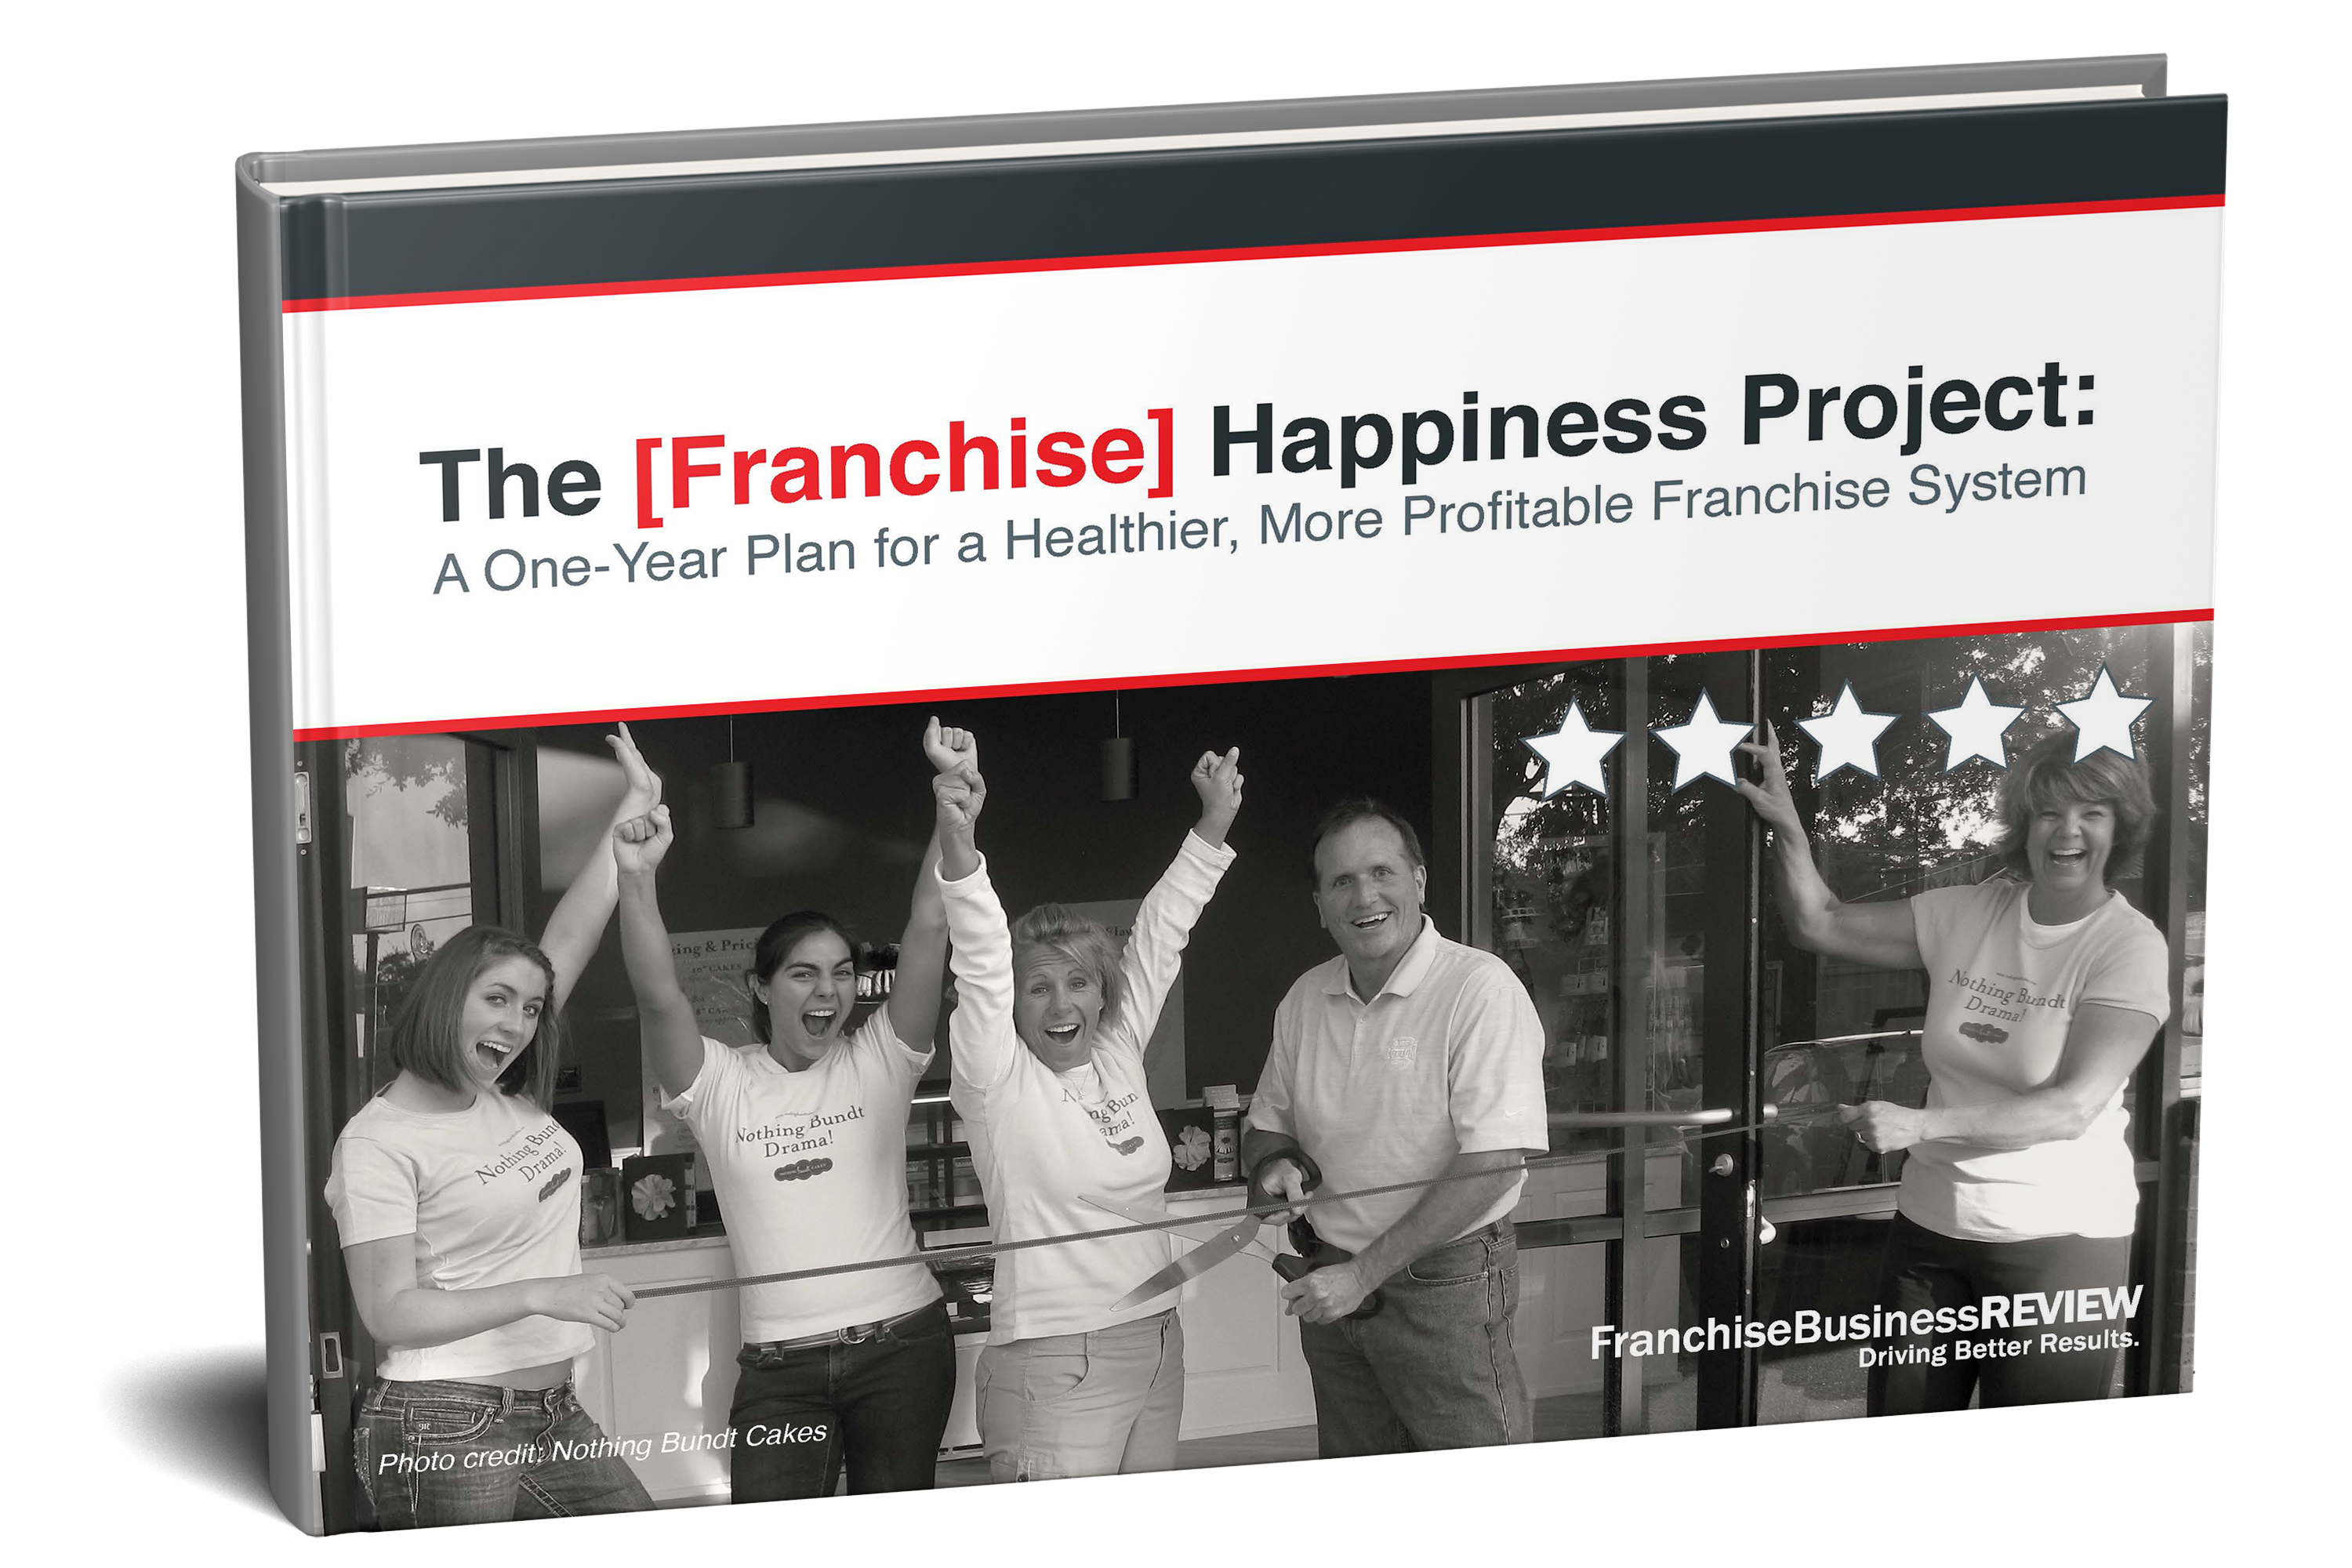 happiness_project_product_shot